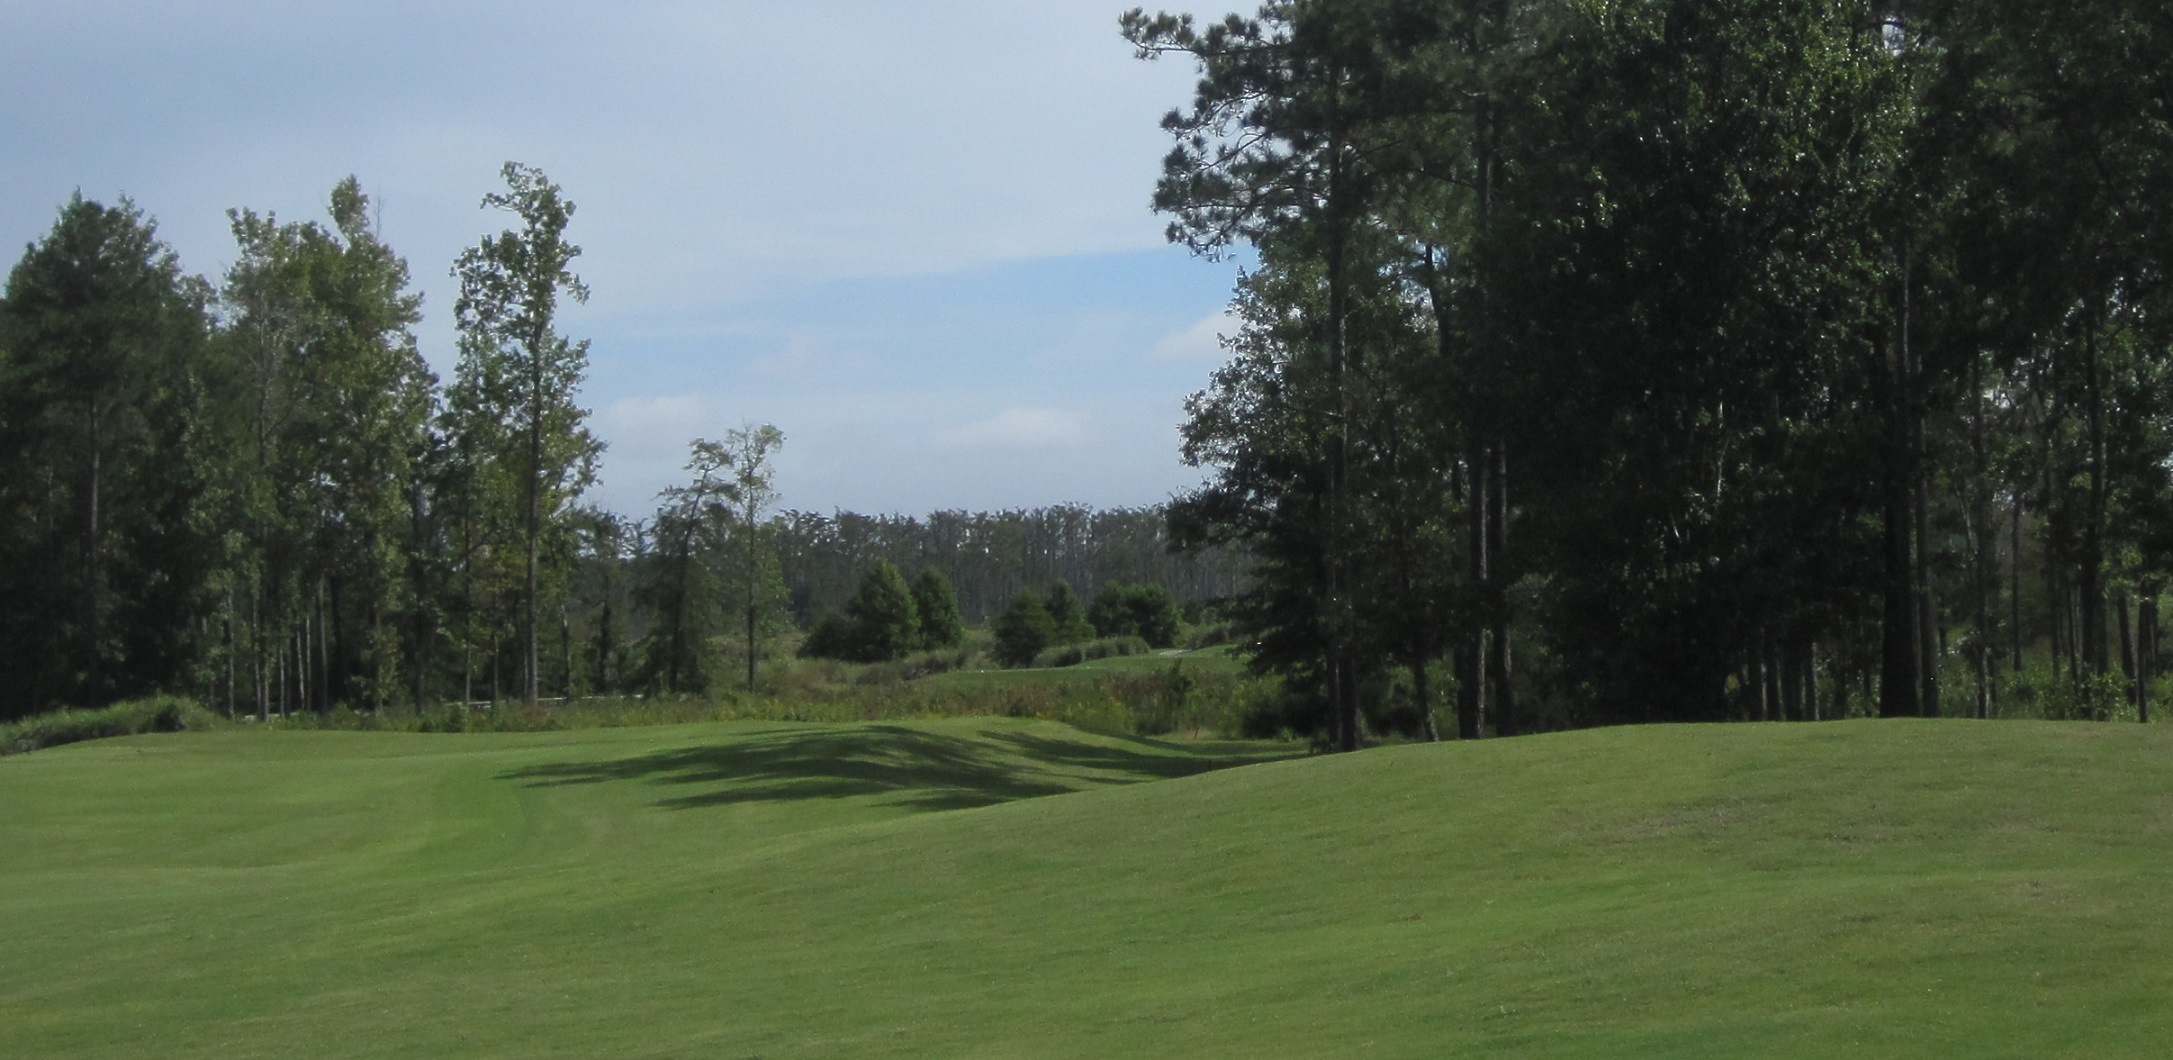 Southeastern NC Golf in the Leland area